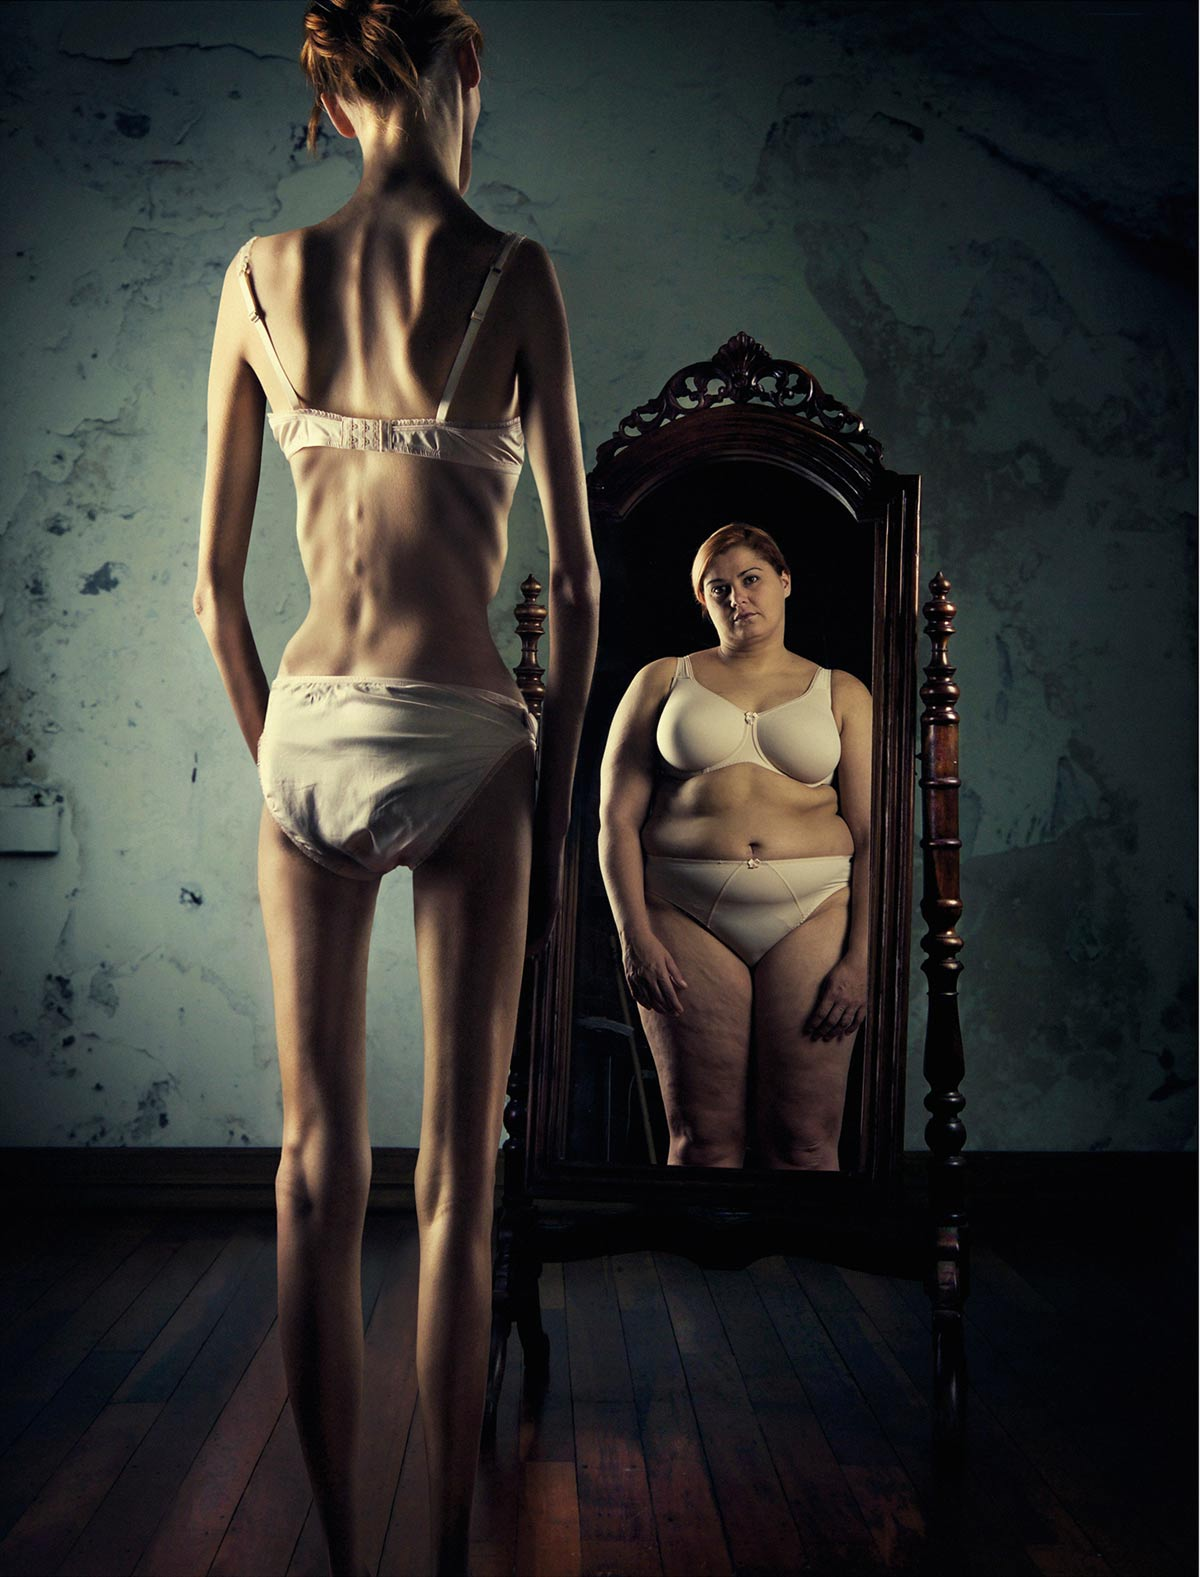 Eating disorder mirror anorexia Ross Brown Geoff Francis